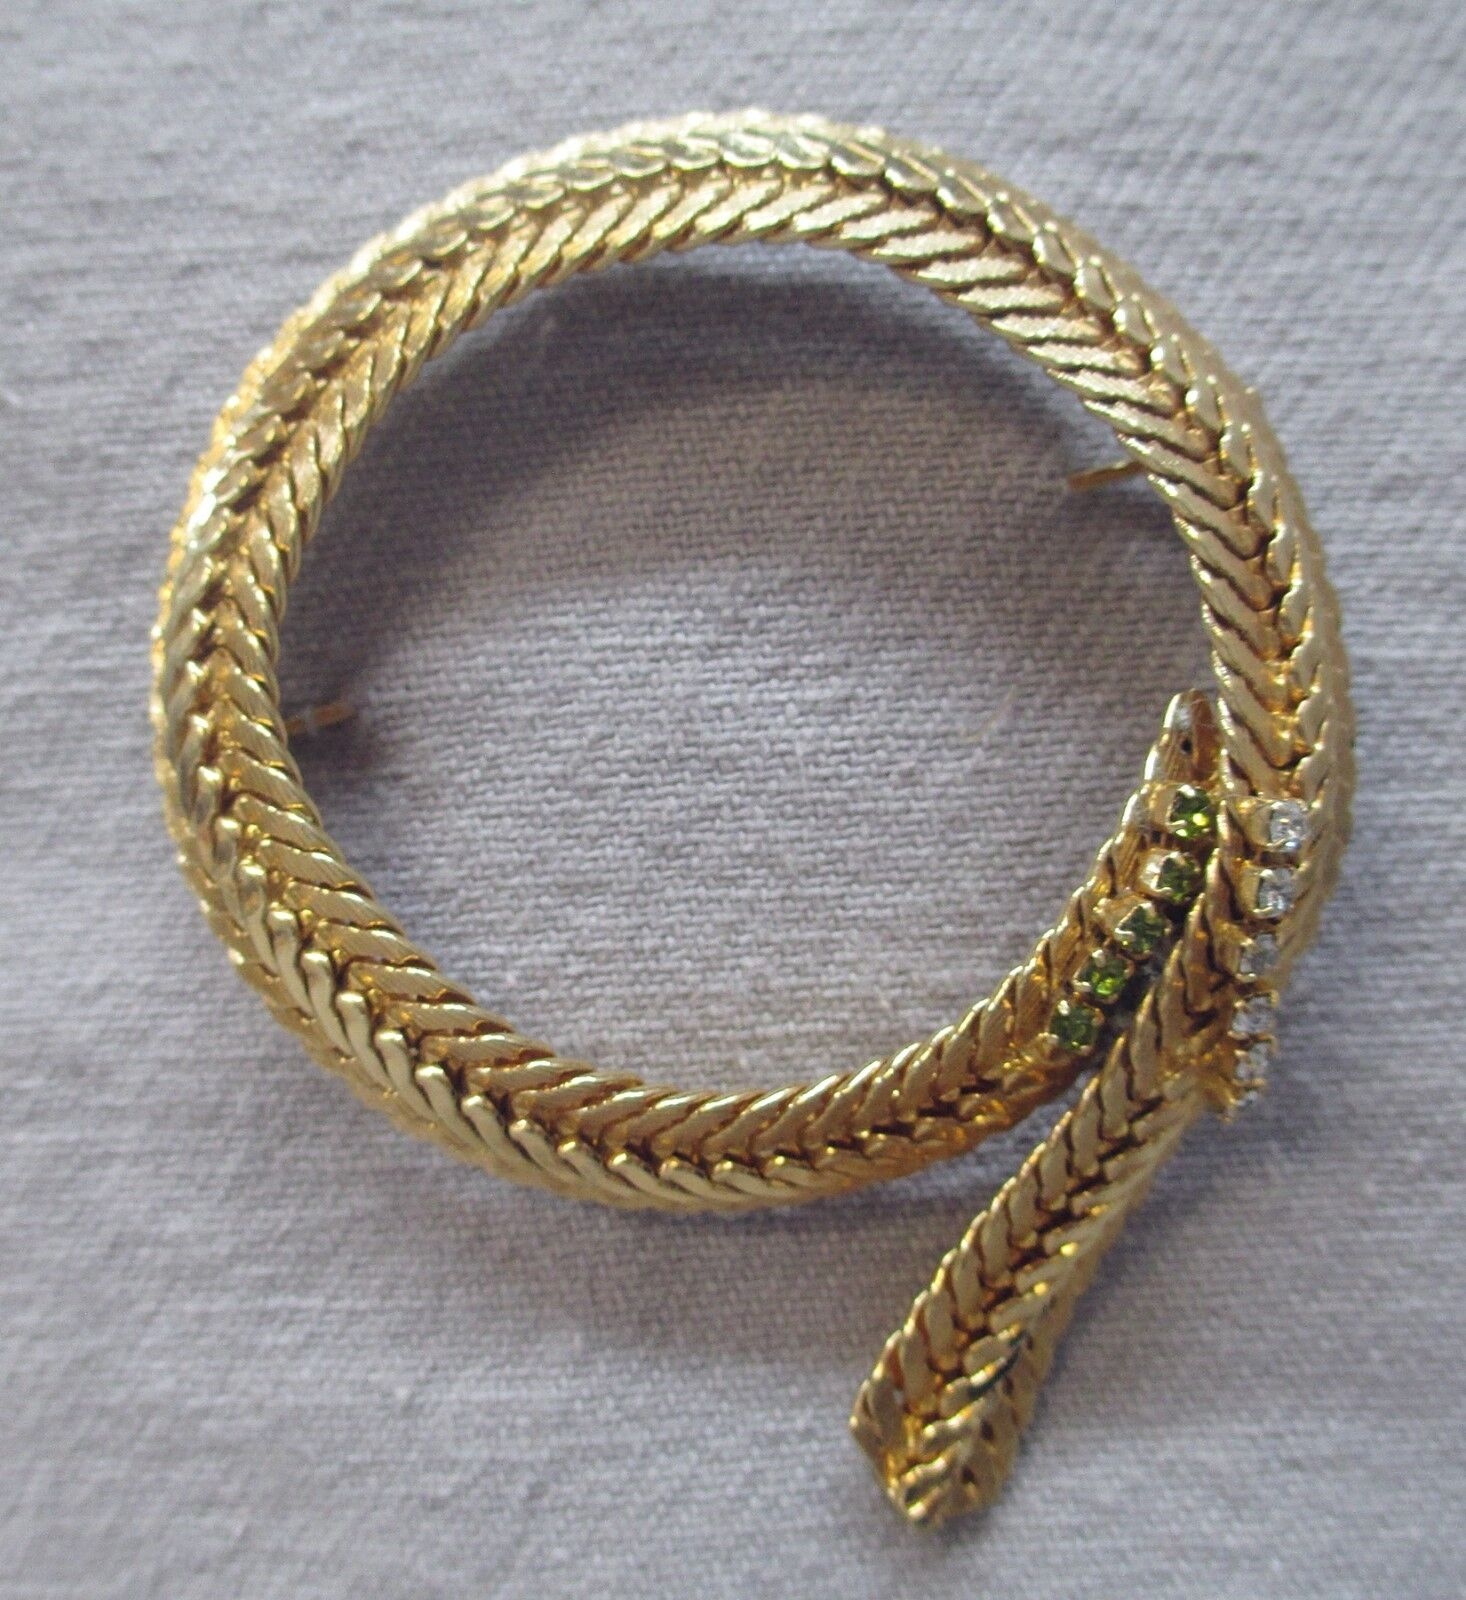 Hobe Signed gold Tone Rope Loop Flat Weave Woven Brooch Pin with Rhinestones